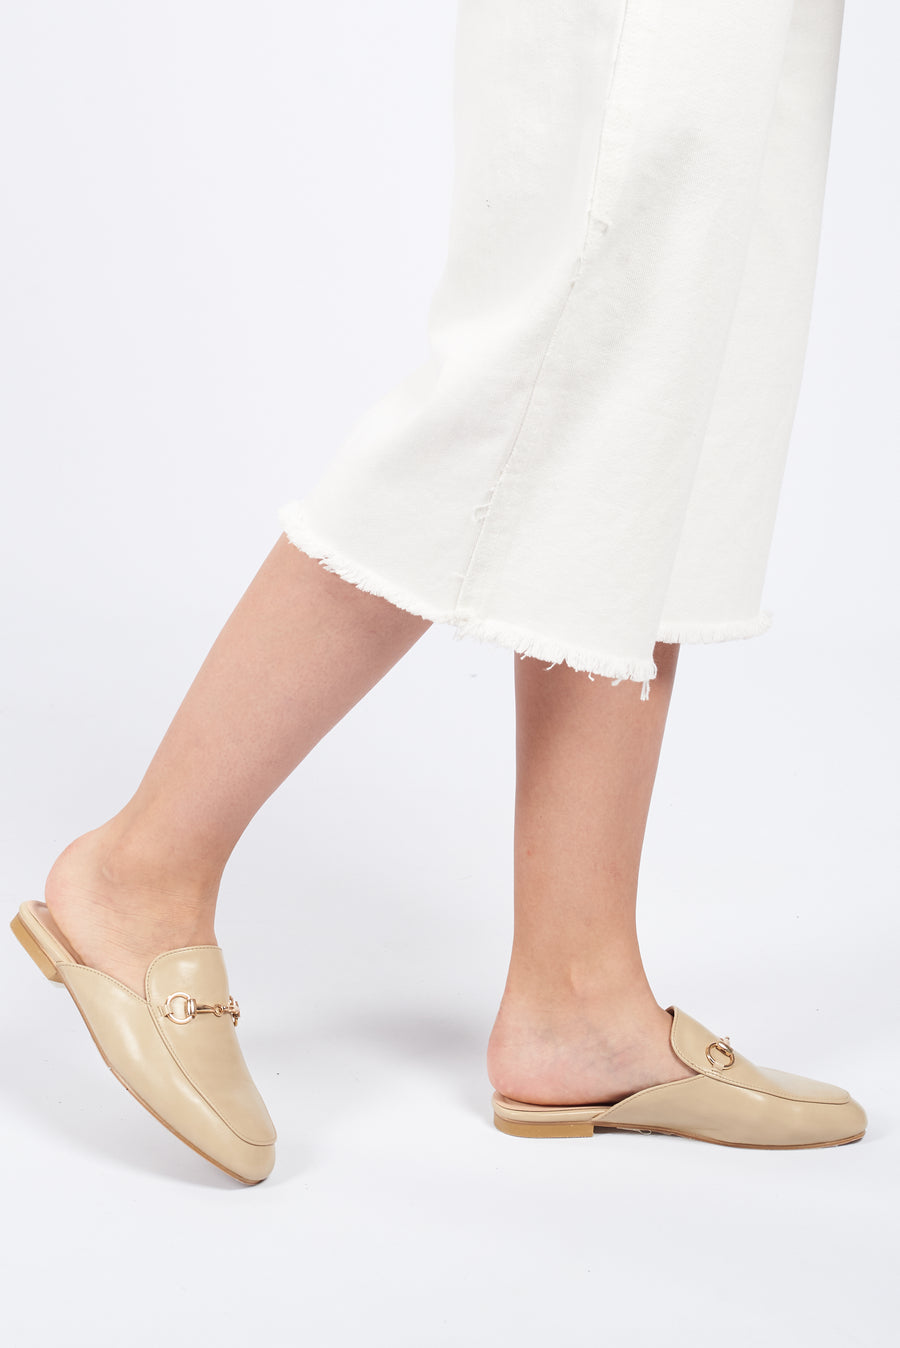 MADISON Horsebit Mule Loafers - Buttermilk